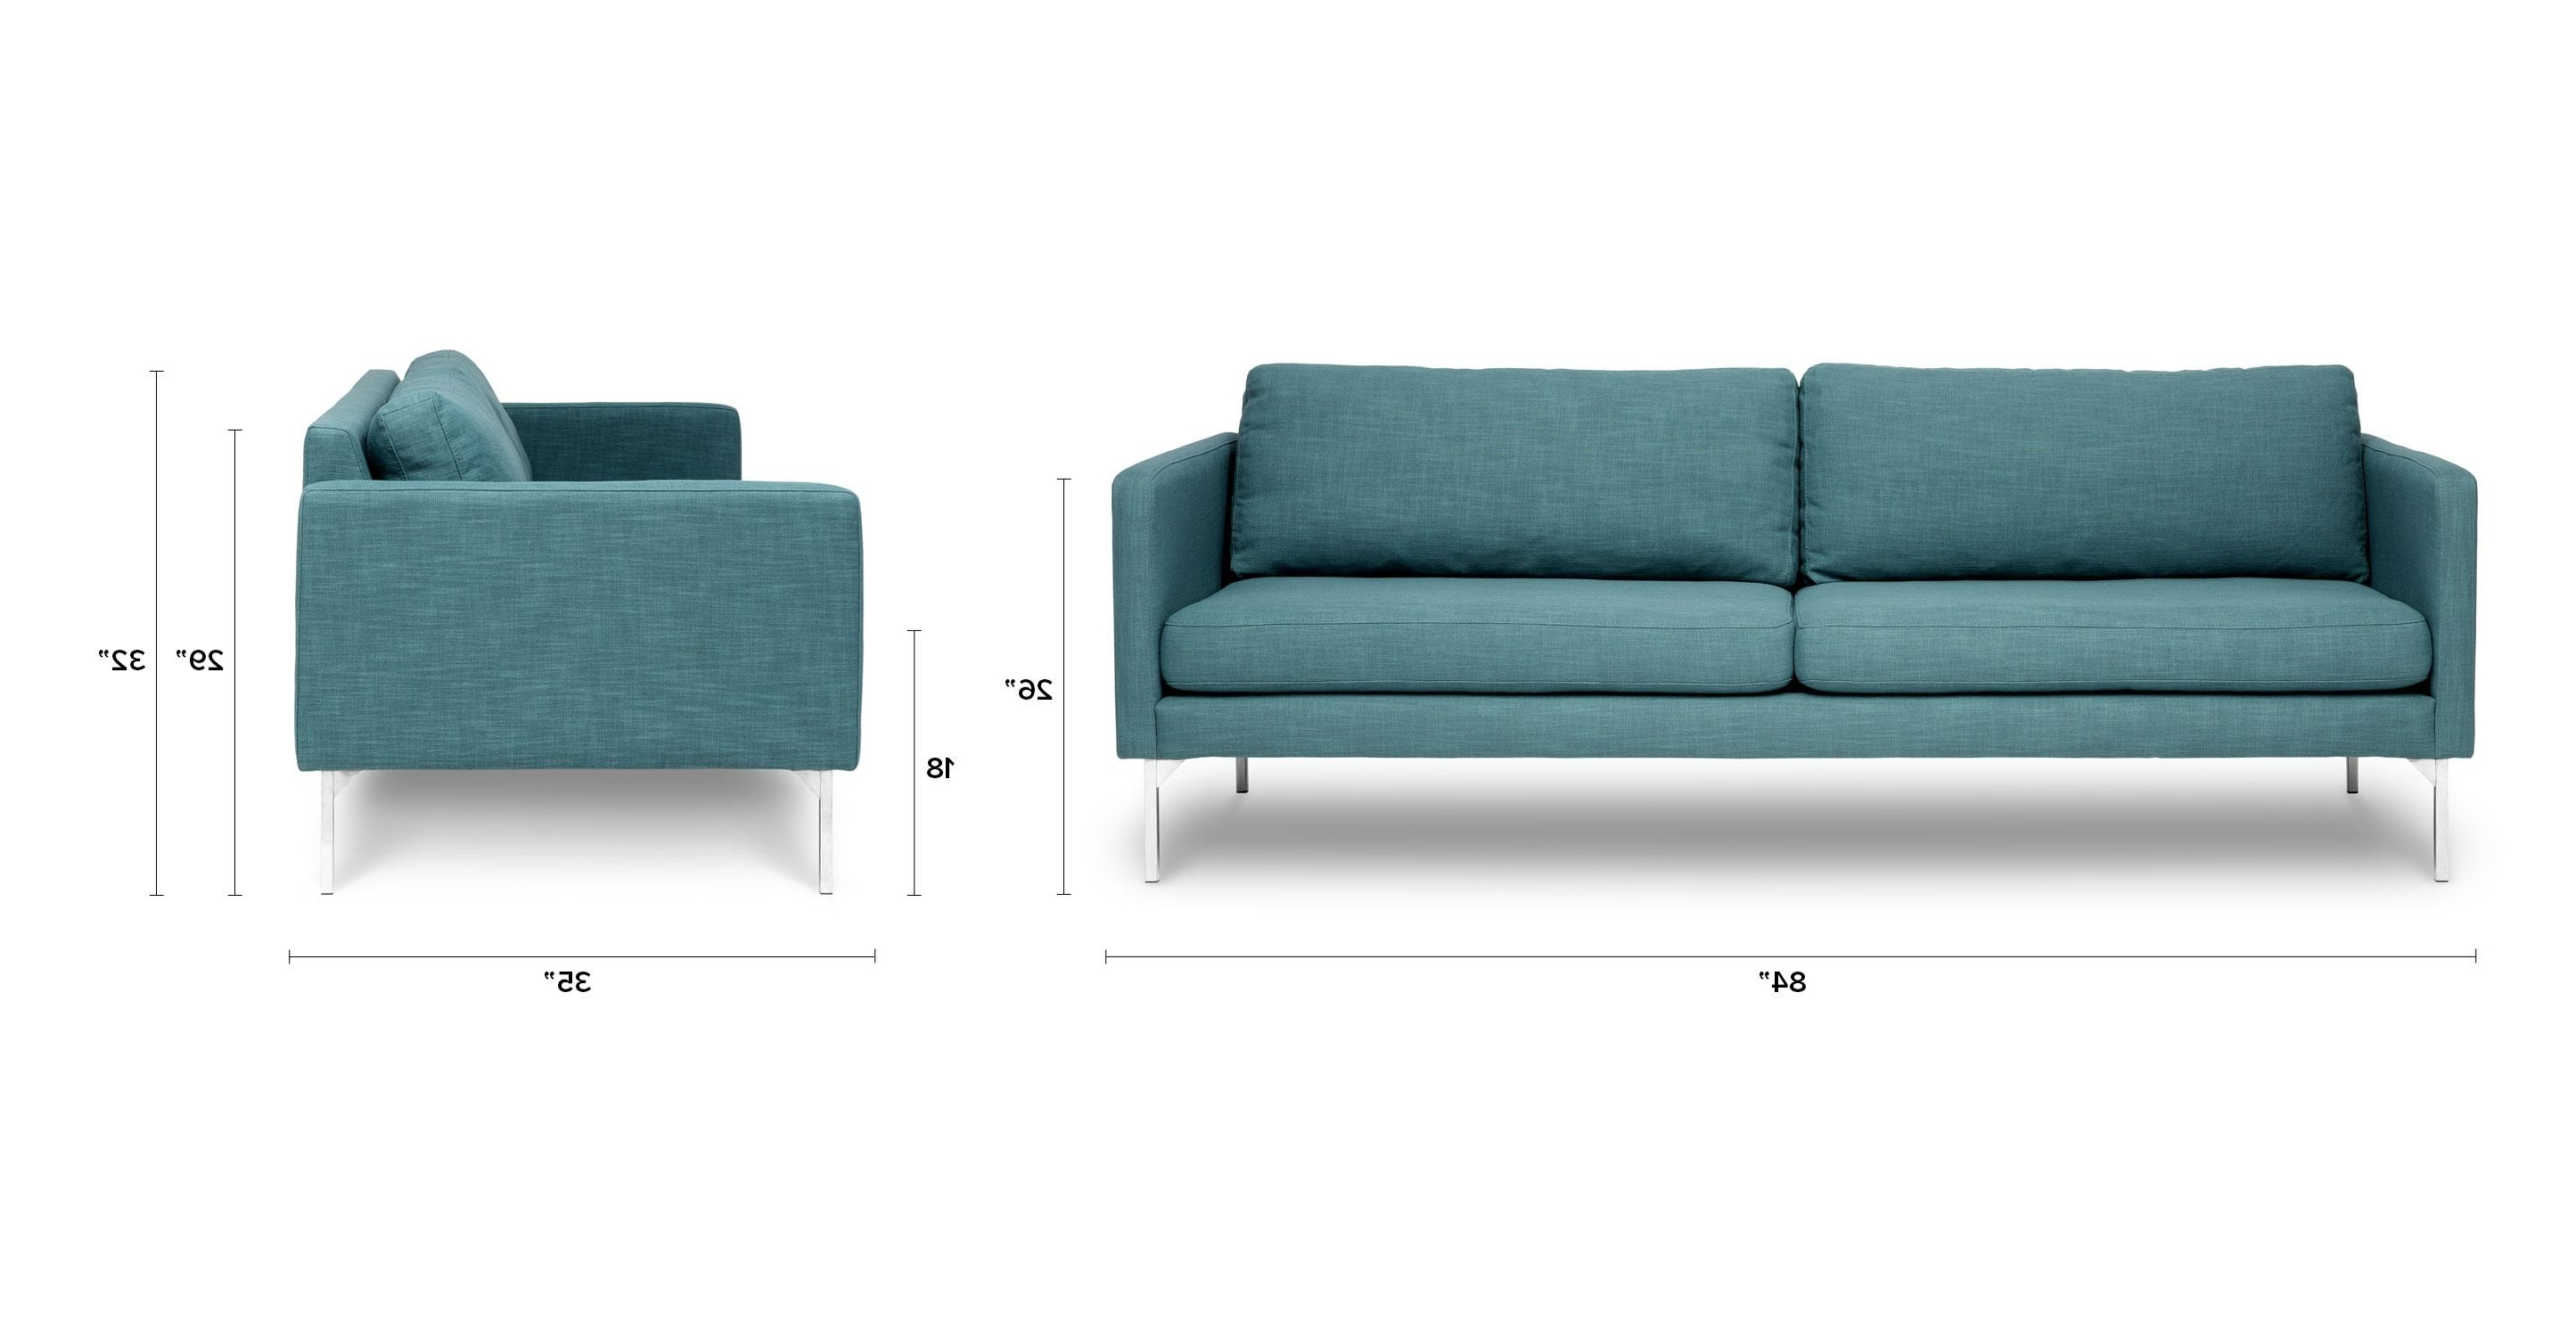 Aqua Sofas Regarding Latest Furniture : Grey Loveseat Cover Elegant Echo Ice Aqua Sofa Sofas (View 4 of 20)